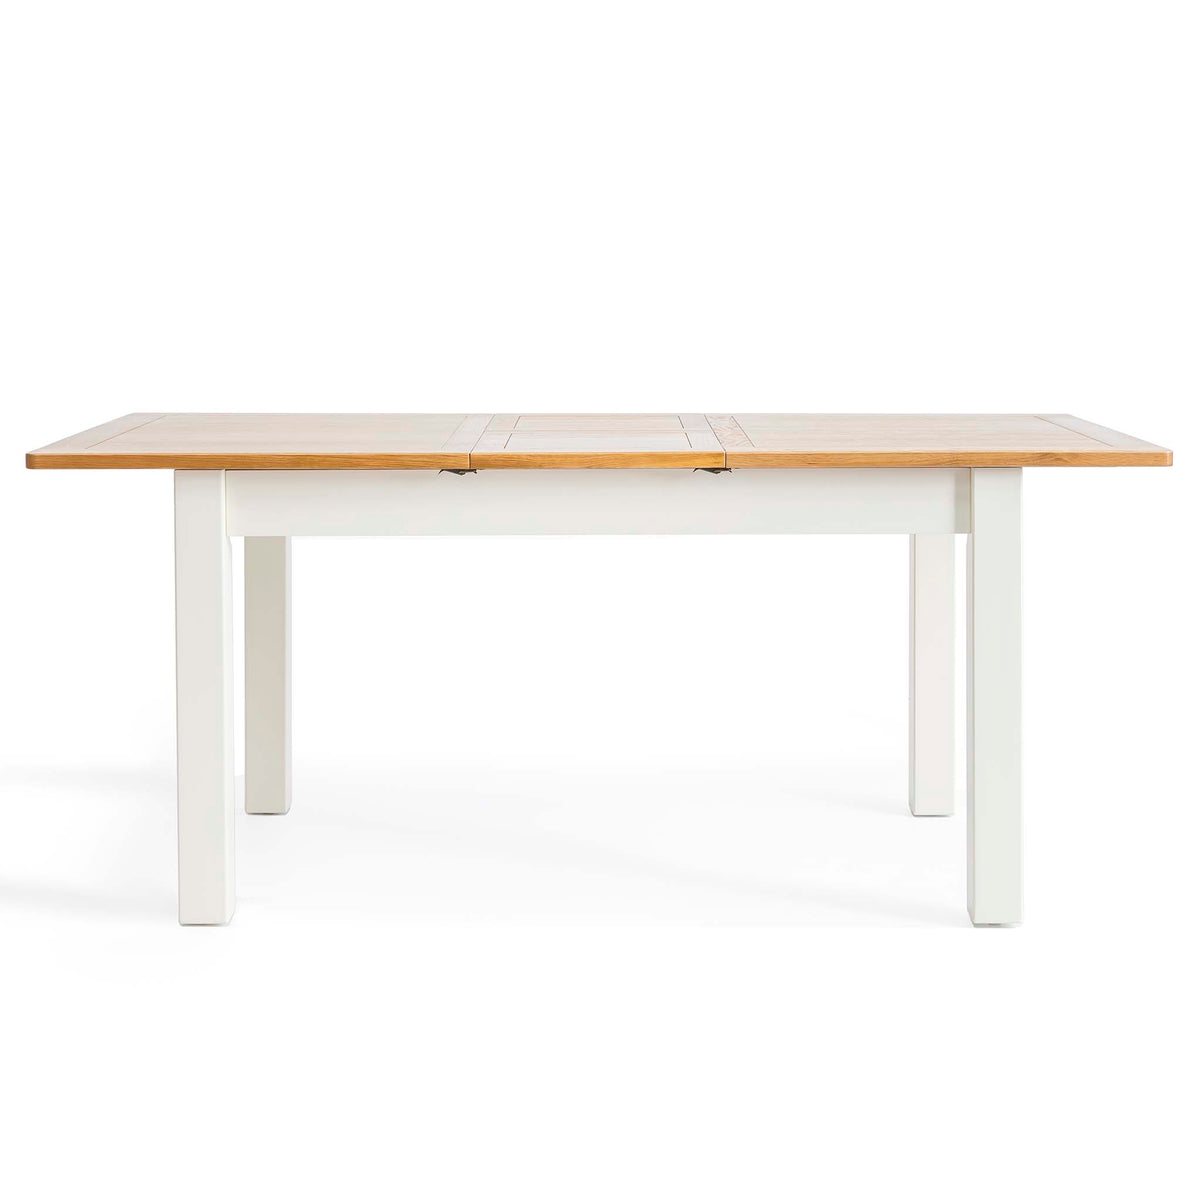 Padstow White Wooden Extending Dining Table - Table fully extended